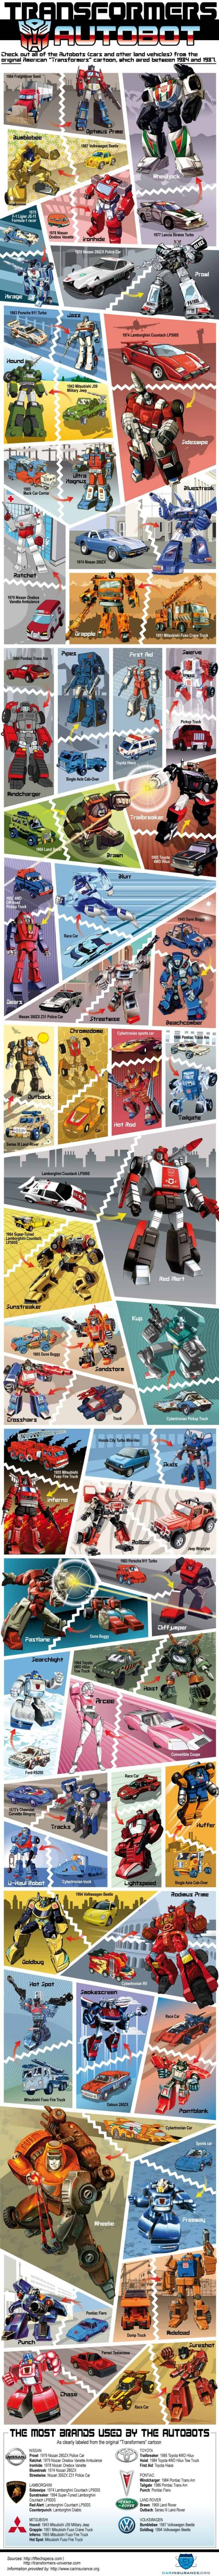 all autobots (cars and land vehicles) from the original transformers cartoon aired 1984-1987